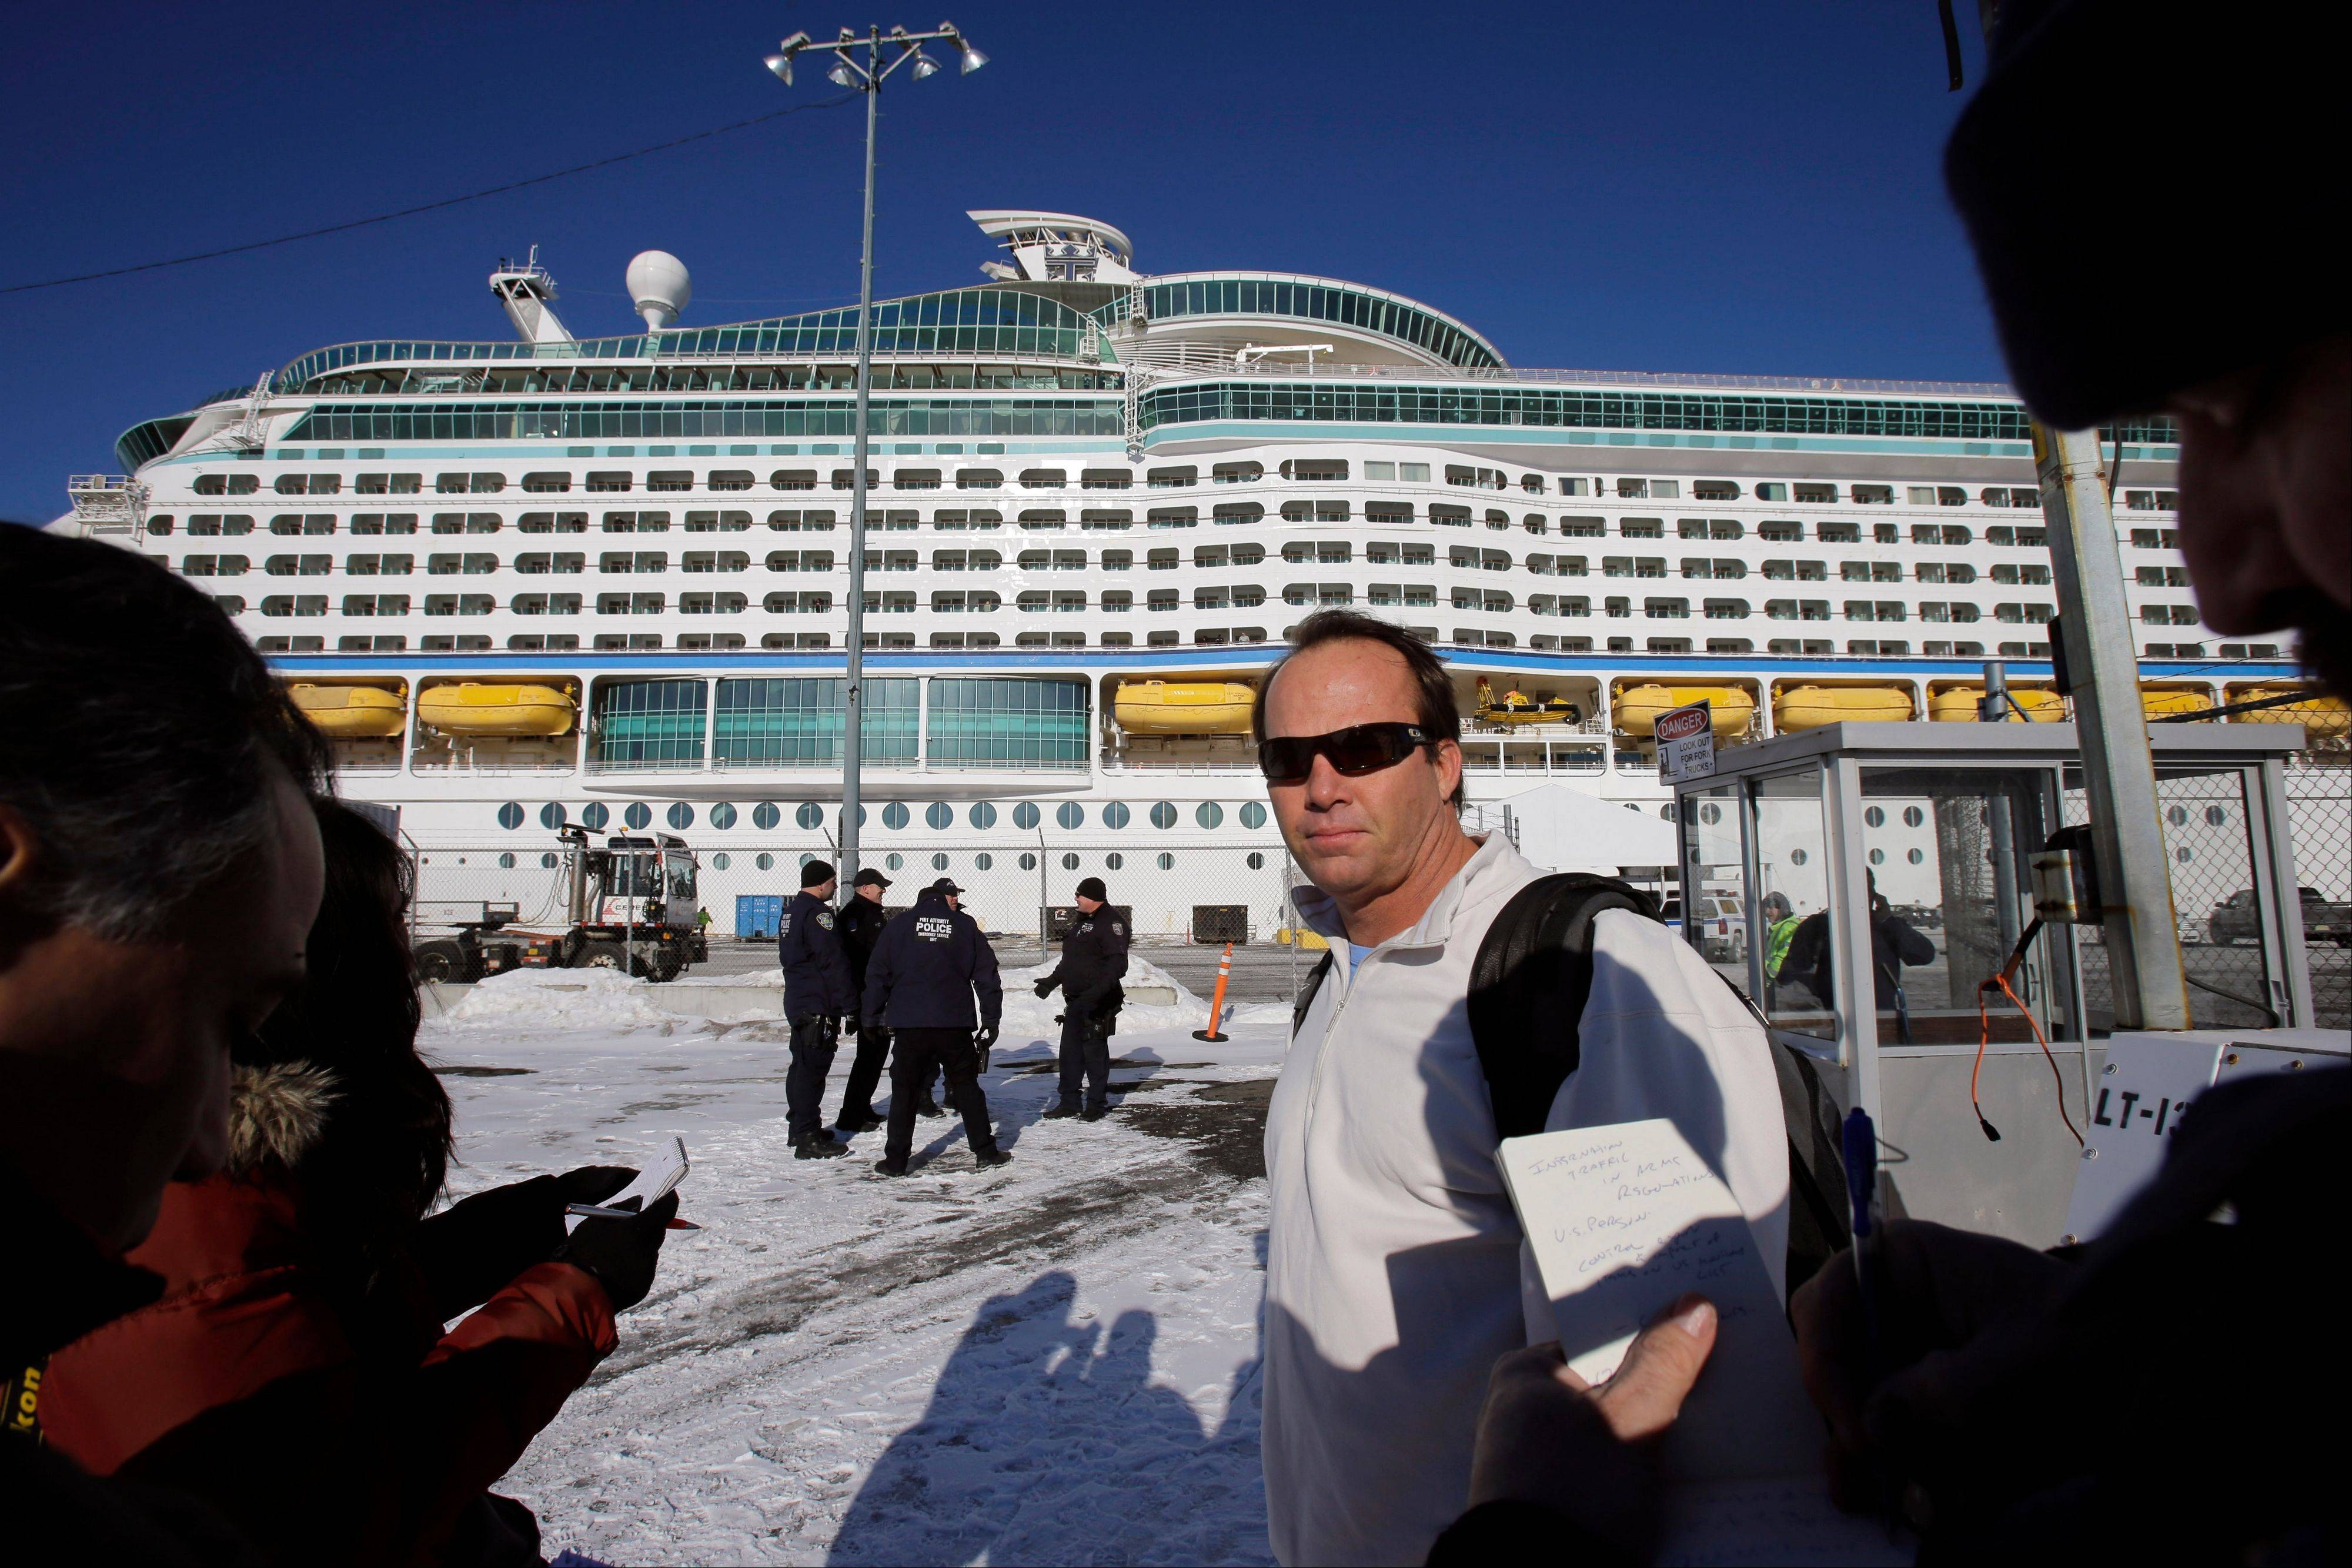 Rick O'Shea, with the Explorer of the Seas cruise ship behind him after it docked in Bayonne, N.J., Wednesday, said his company is preparing to disinfect the ship. The U.S. Centers for Disease Control and Prevention said Wednesday its latest count puts the number of those sickened aboard the Explorer of the Seas at 630 passengers and 54 crew members.